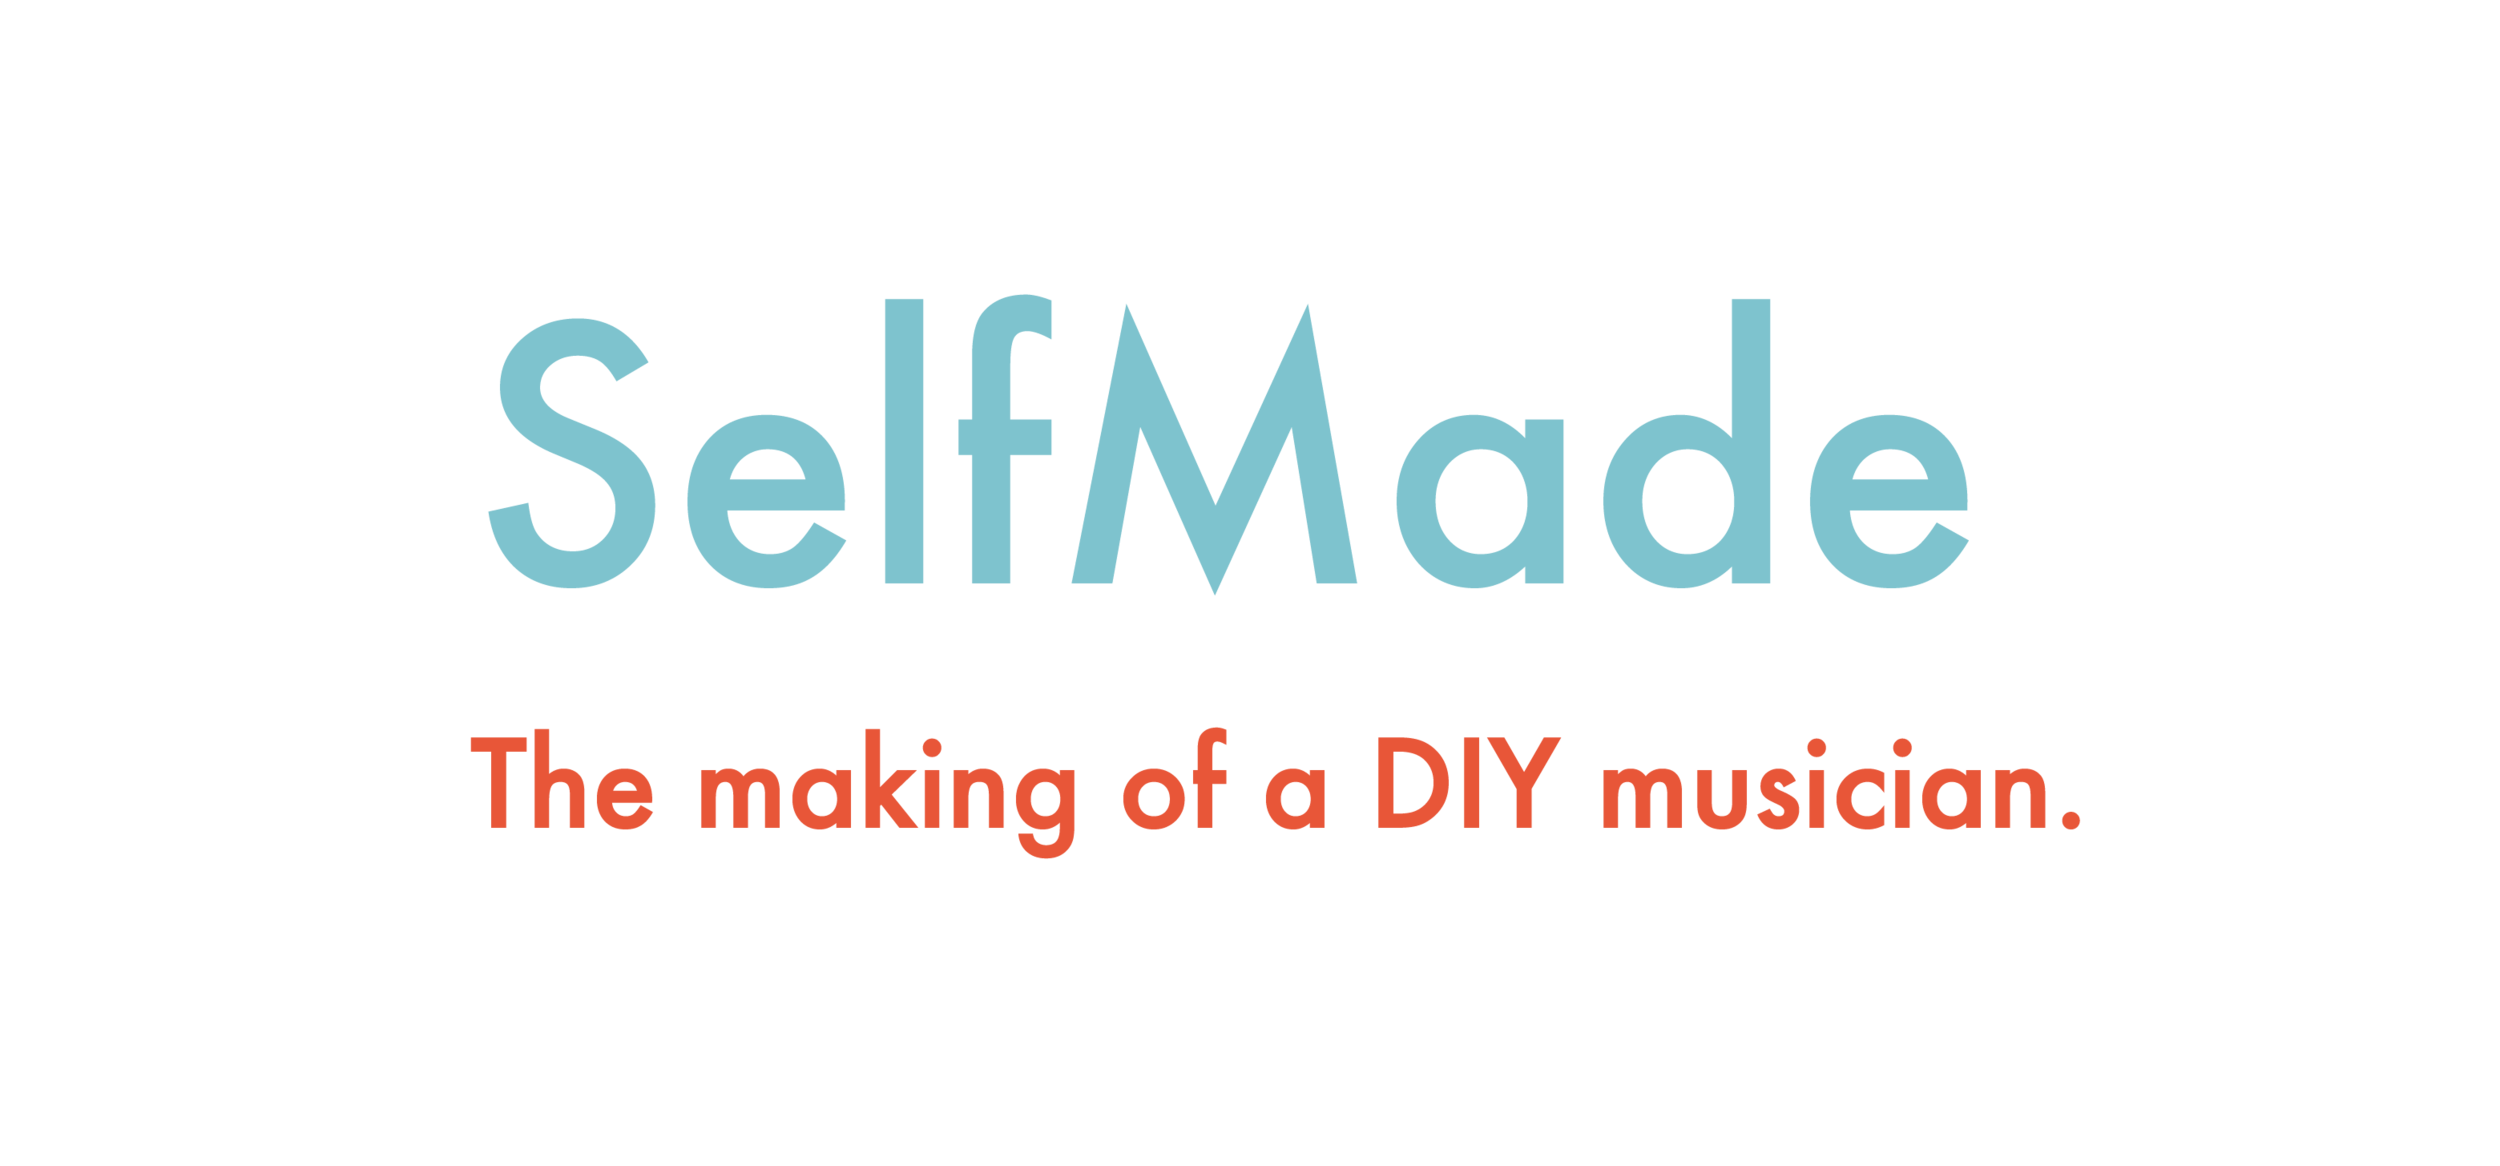 SelfMade Logo Blue and Red.png